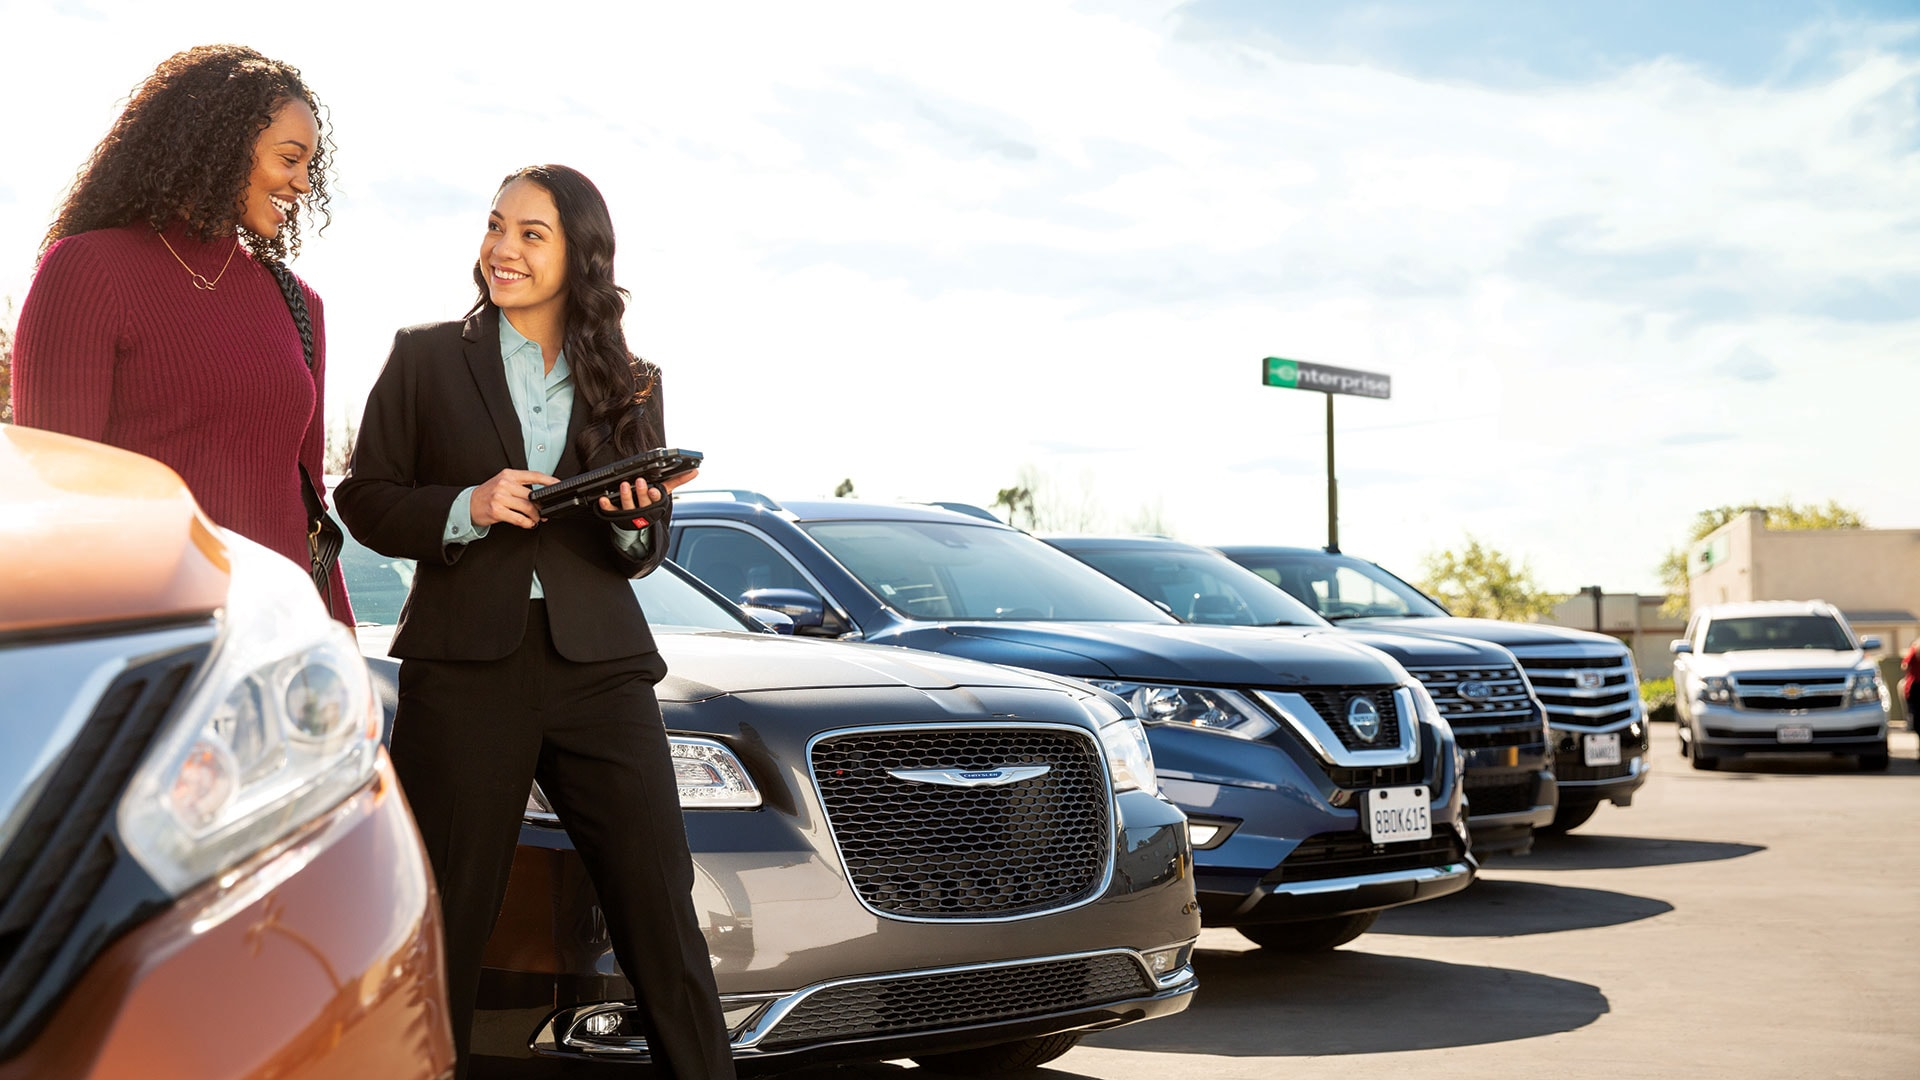 Enterprise rent a car vaughan